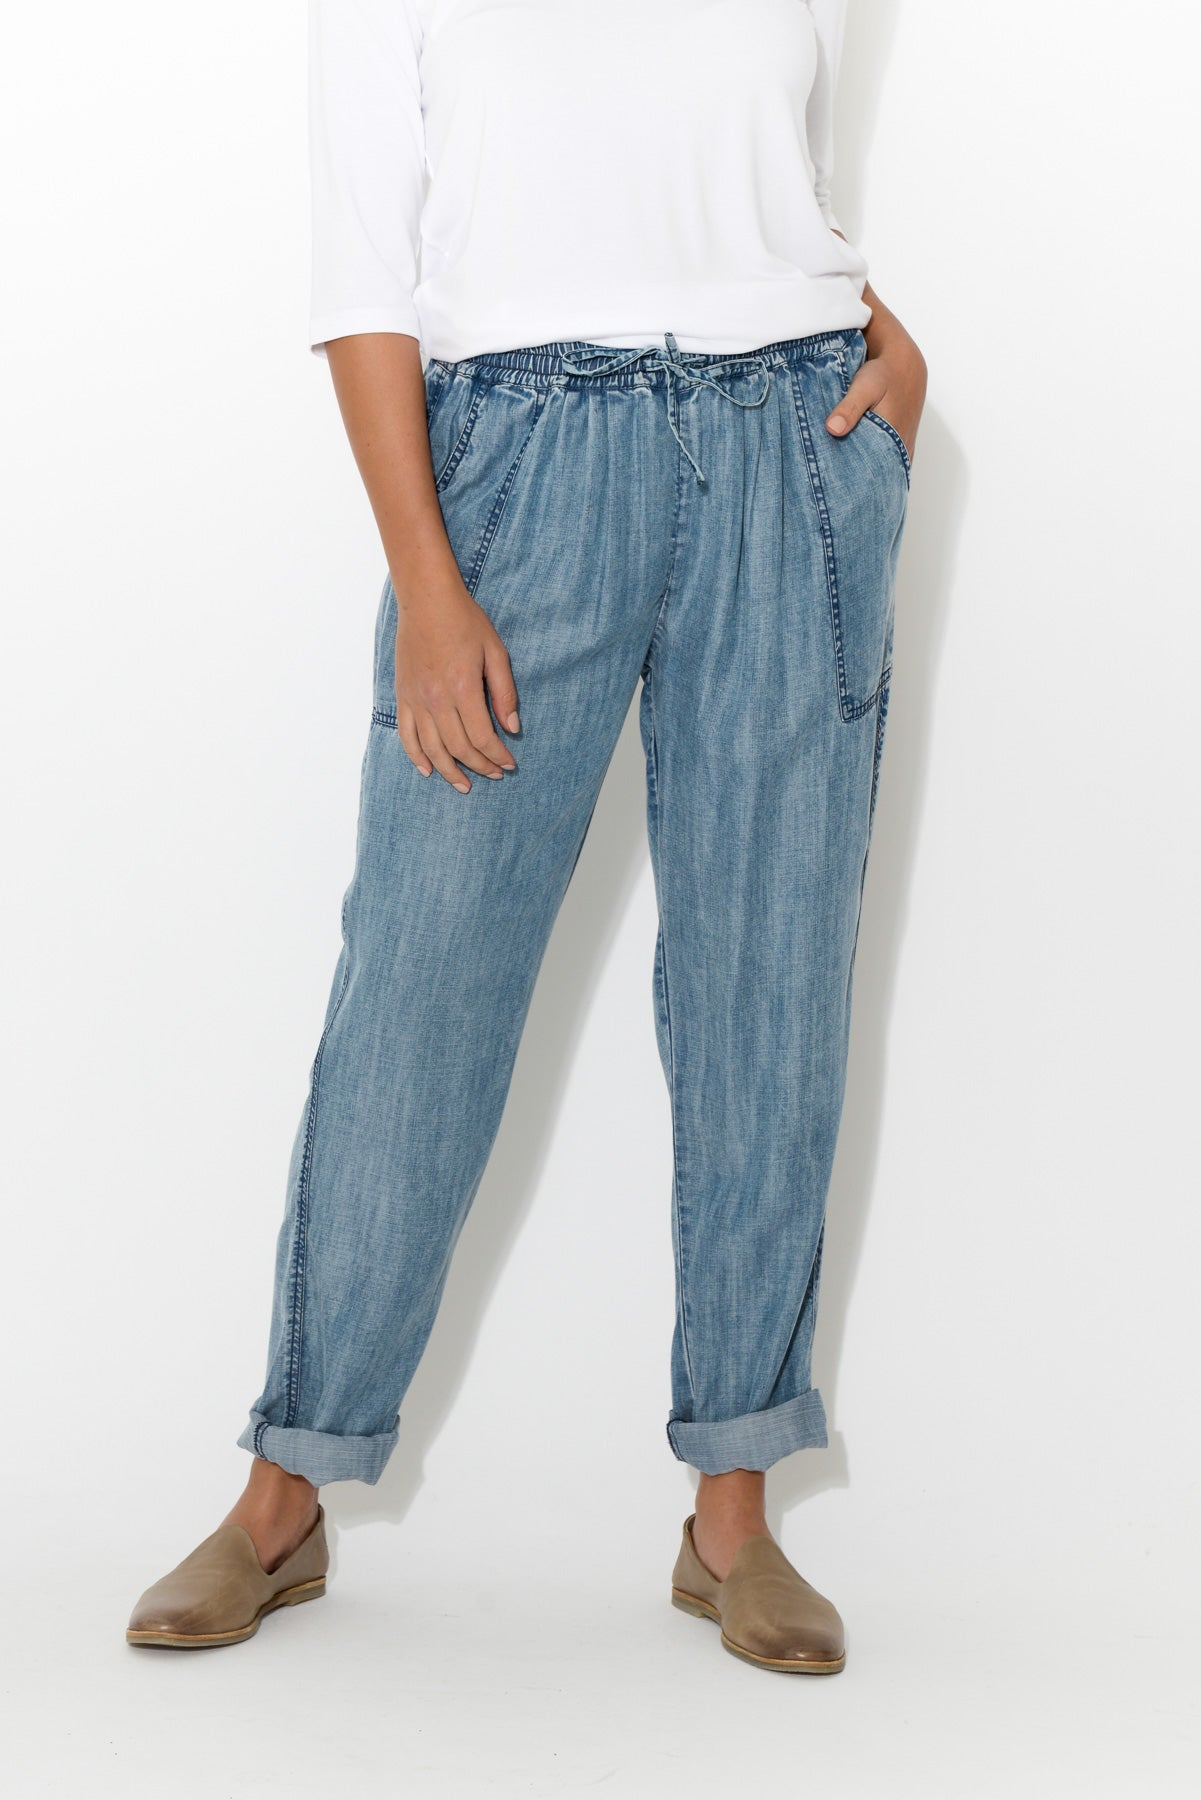 Blue Washed Relax Pant - Blue Bungalow